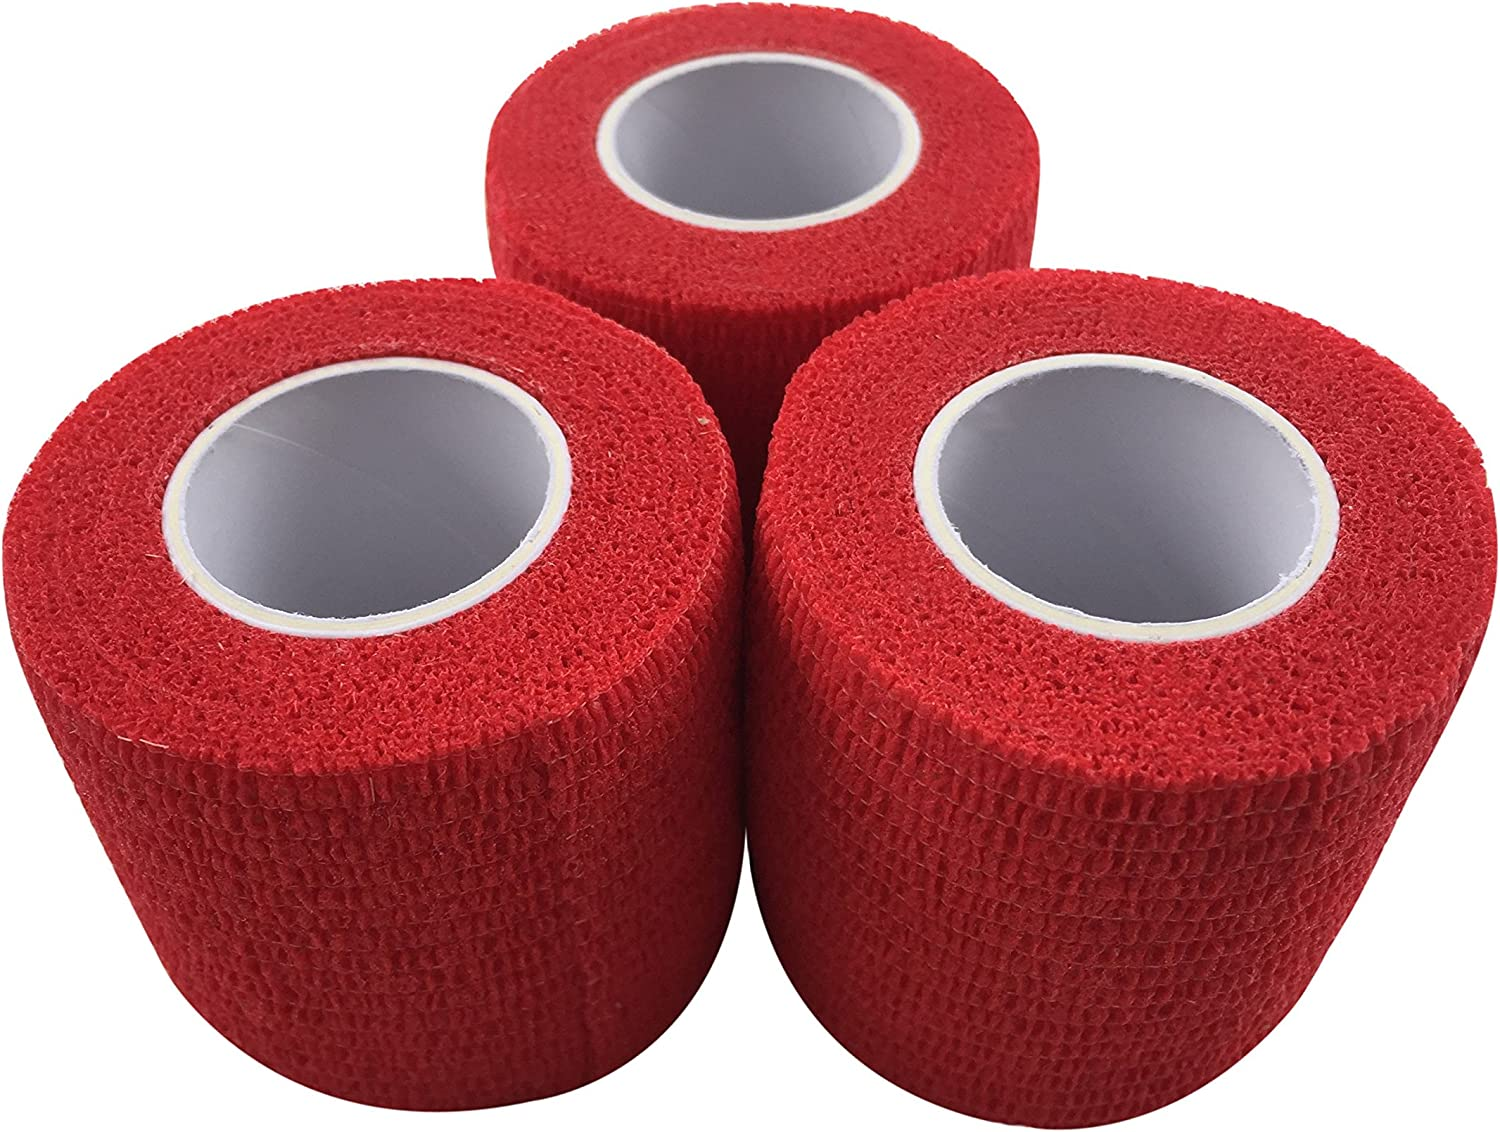 zechy Grip Tape - Hockey, Baseball, Lacrosse, Any Other Sports requiring a Solid Grip - 2 inch by 15 feet (red)(3 Pack) : Sports & Outdoors